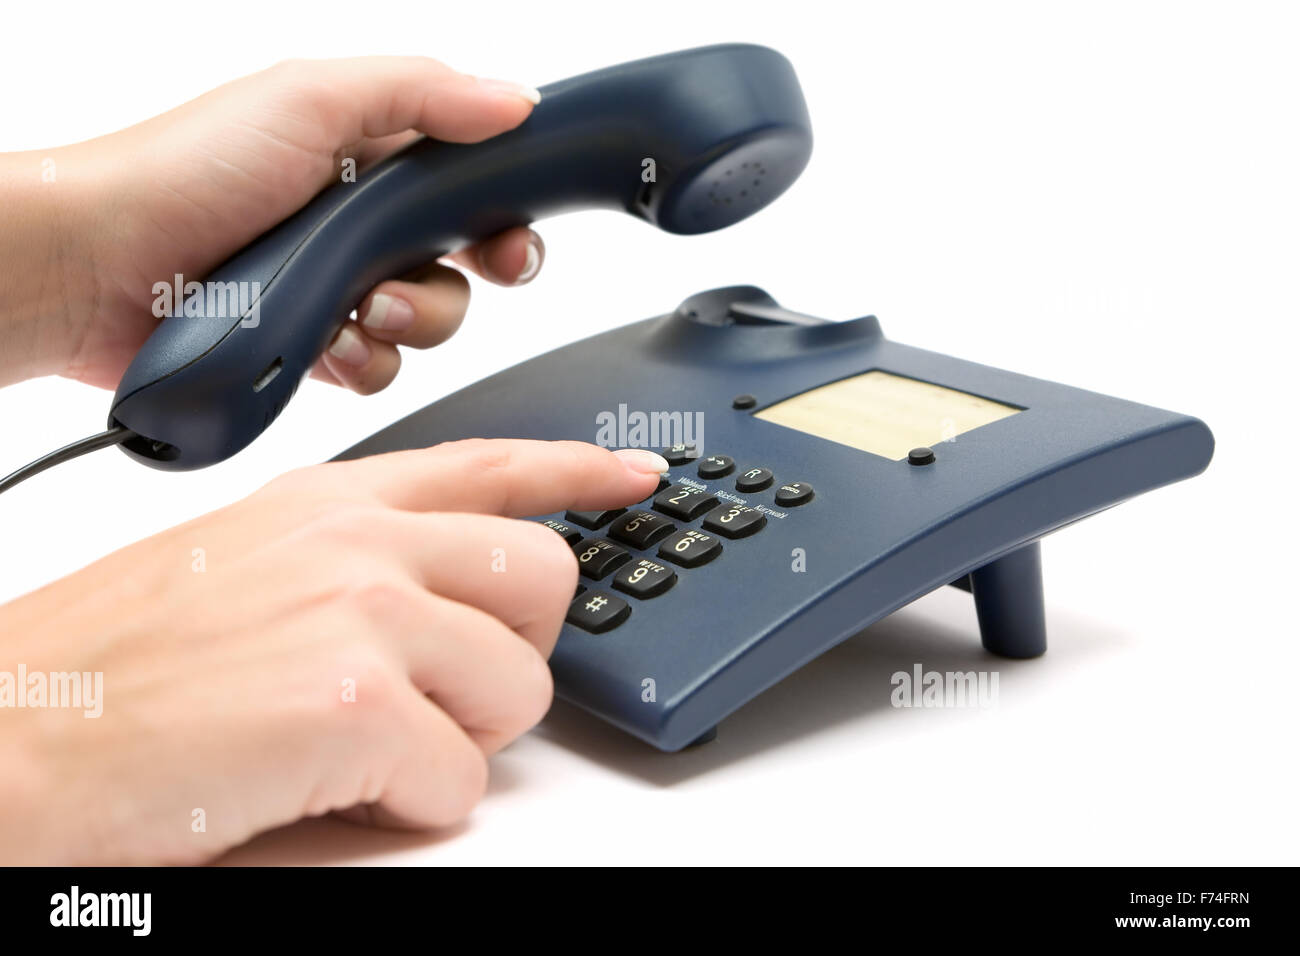 Making a Phone Call - Stock Image